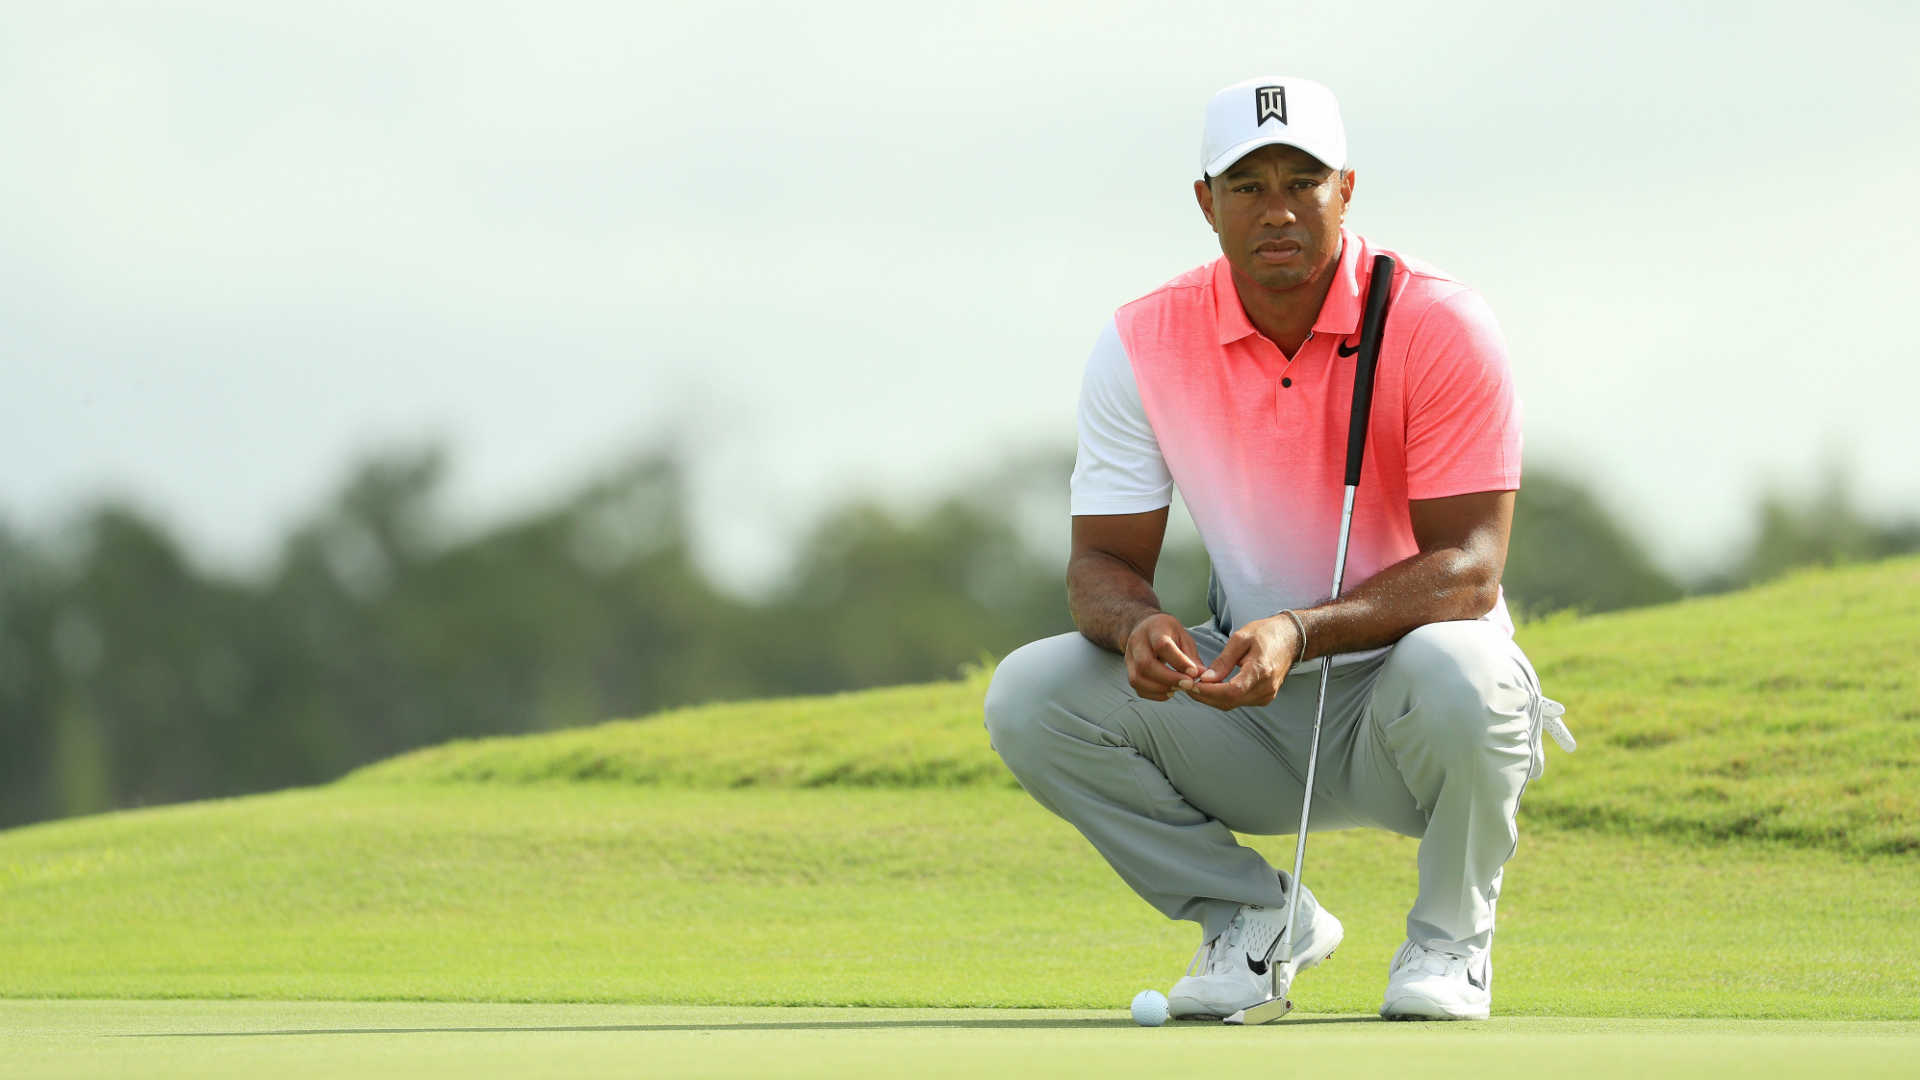 Tiger Woods comeback: Wednesday pro-am offers tantalizing preview